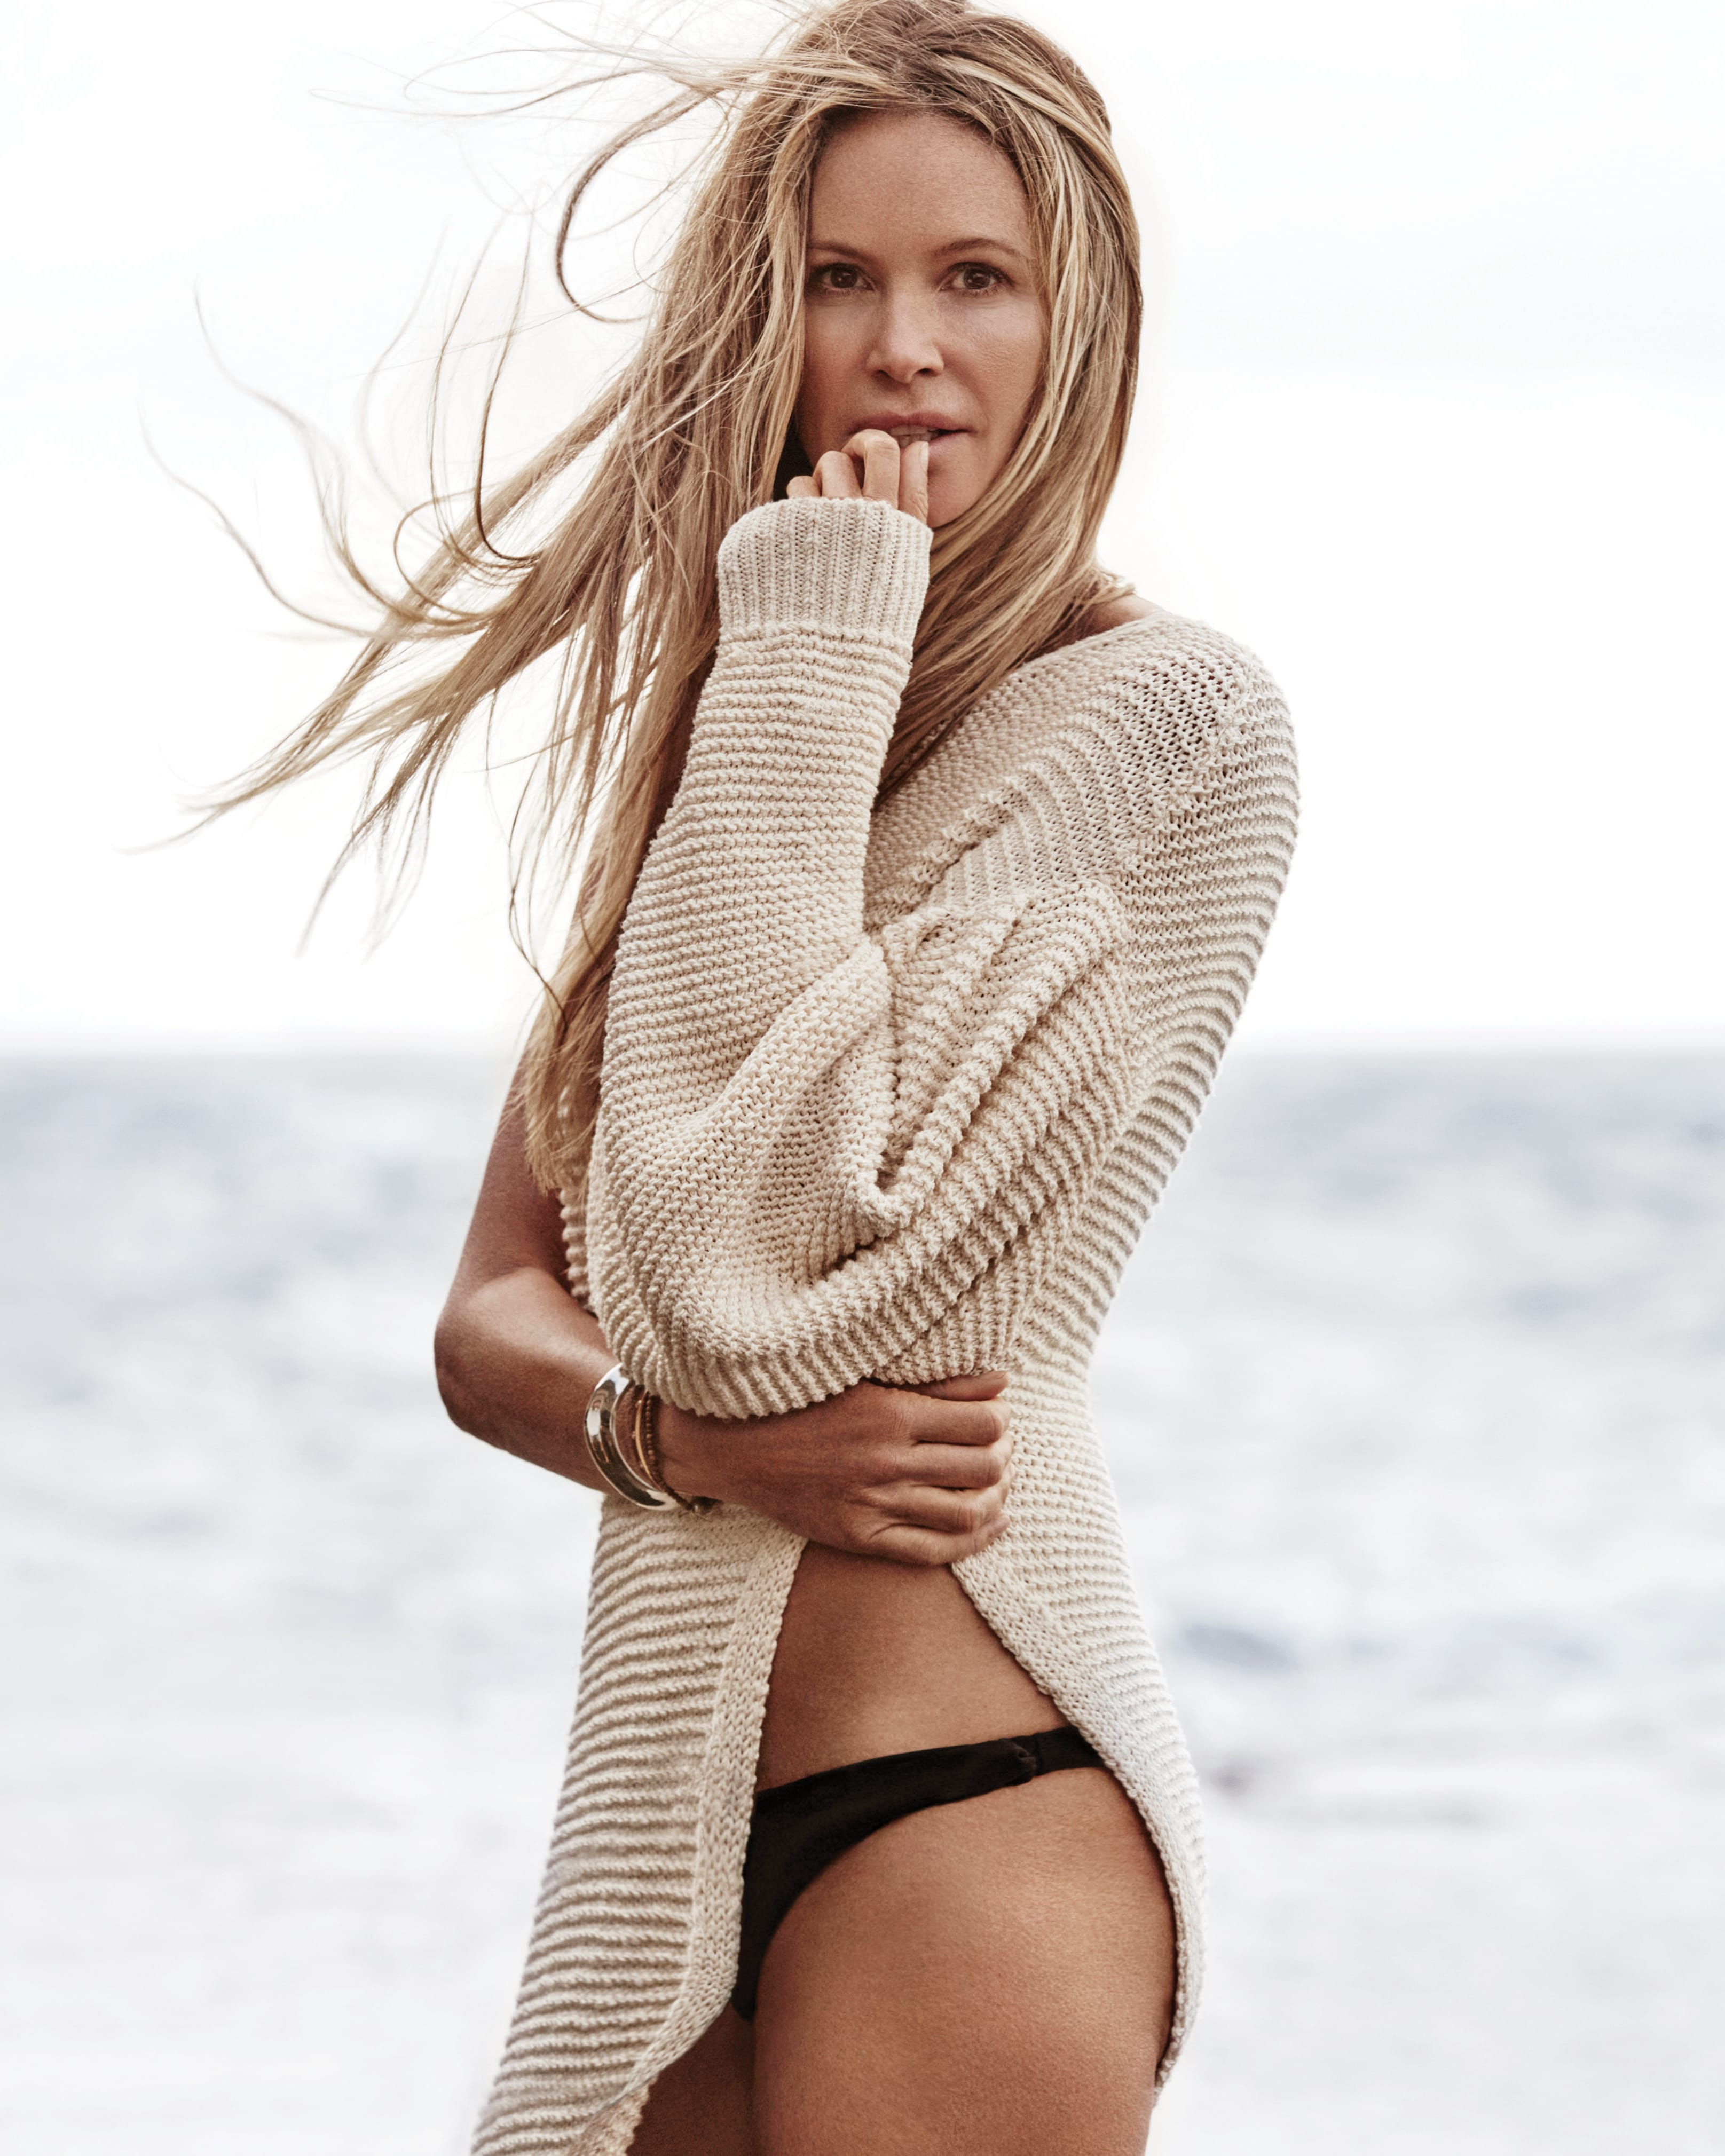 Discussion on this topic: Nancy Wickwire, elle-macpherson/